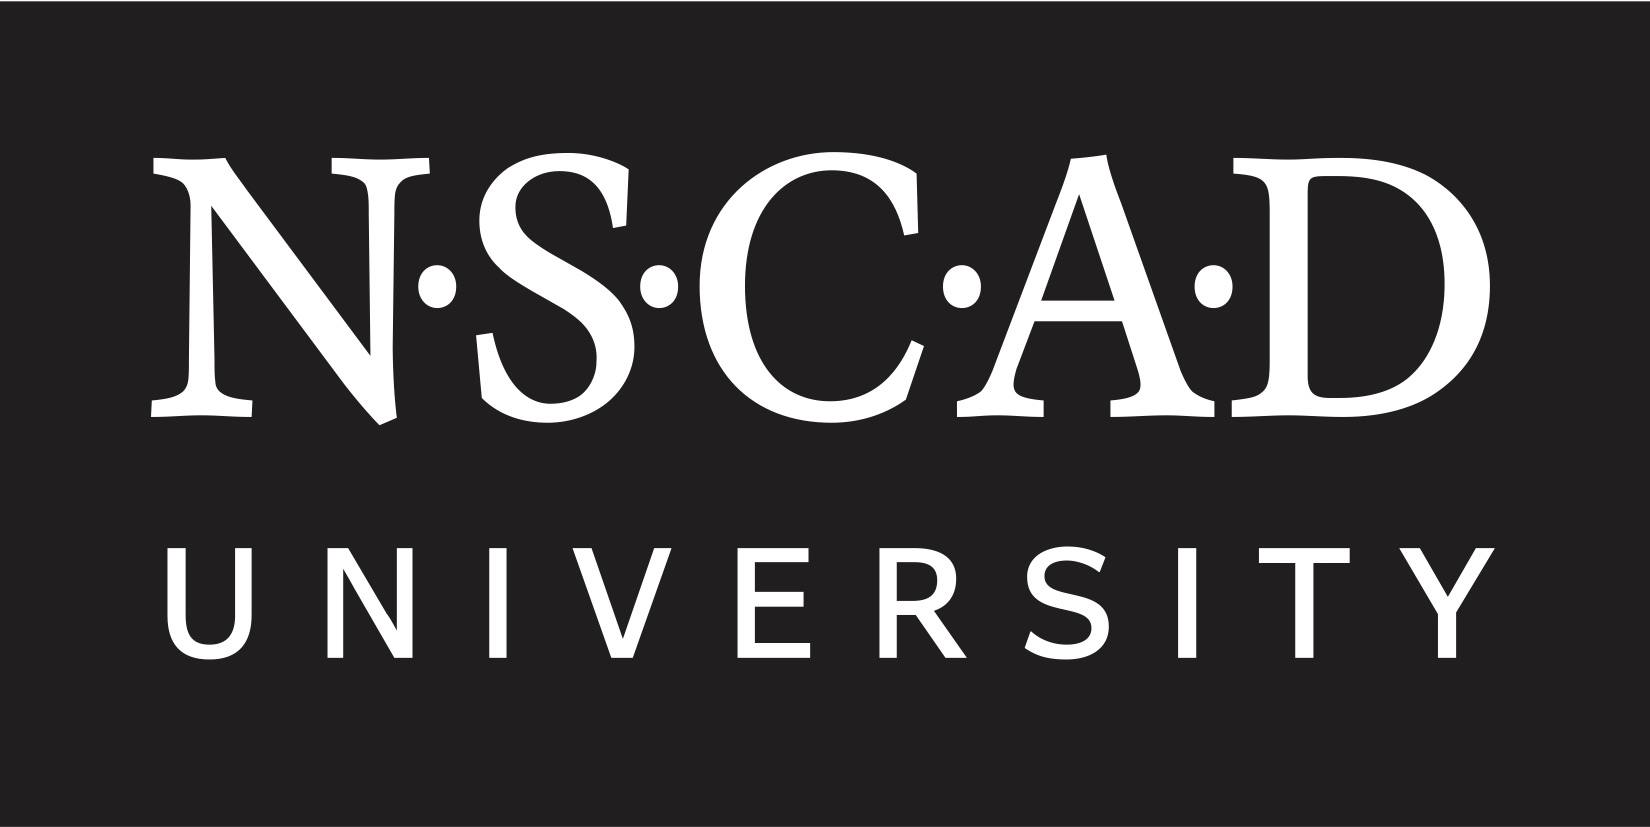 NSCAD-logo-black-copy.jpg